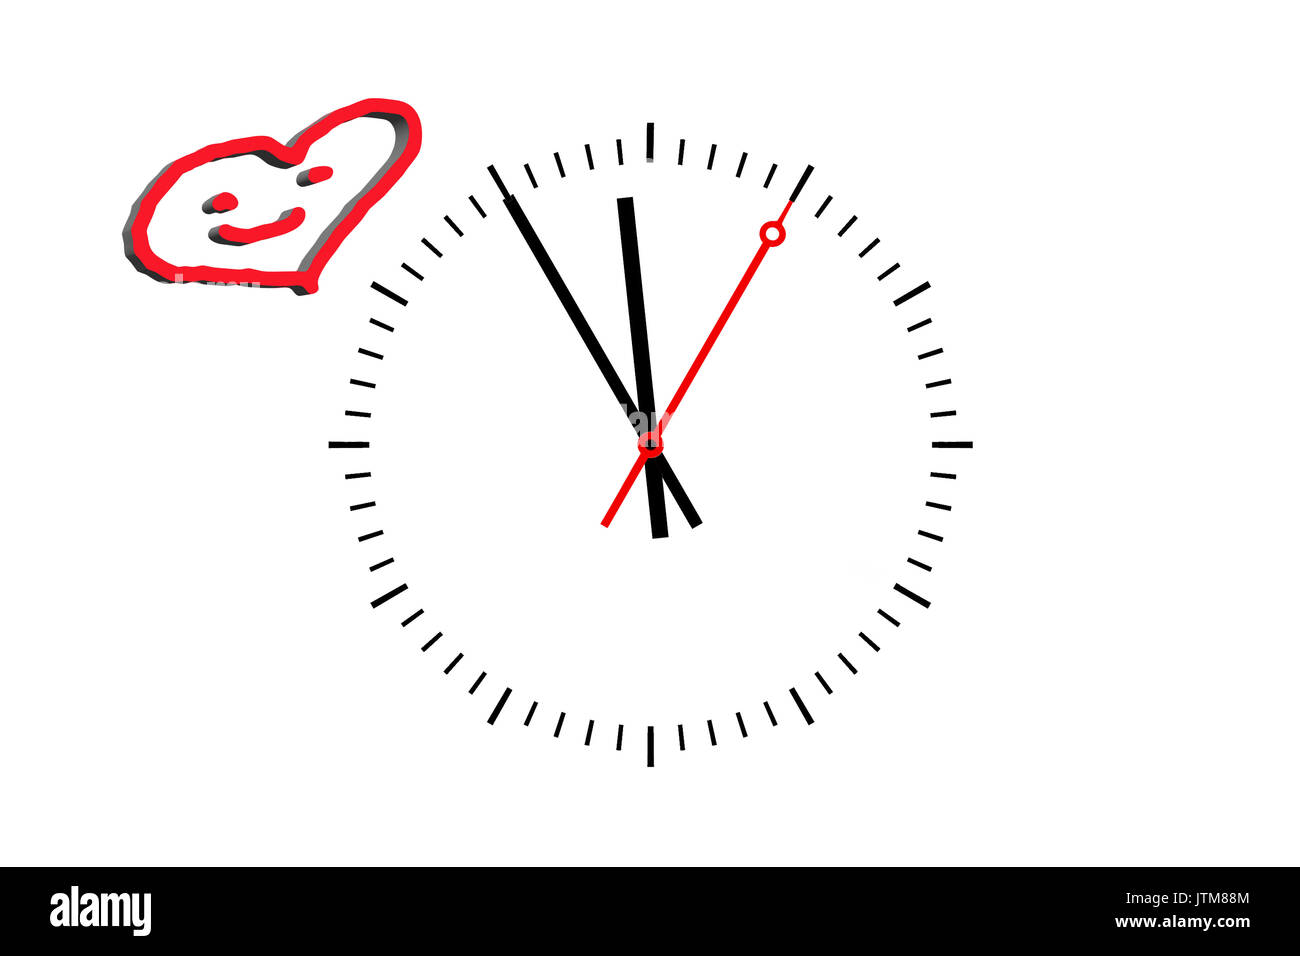 Clock, Digits sheet with hour hand, minute hand and a red second hand indicates the time 5 before 12. Copy space on white background. - Stock Image